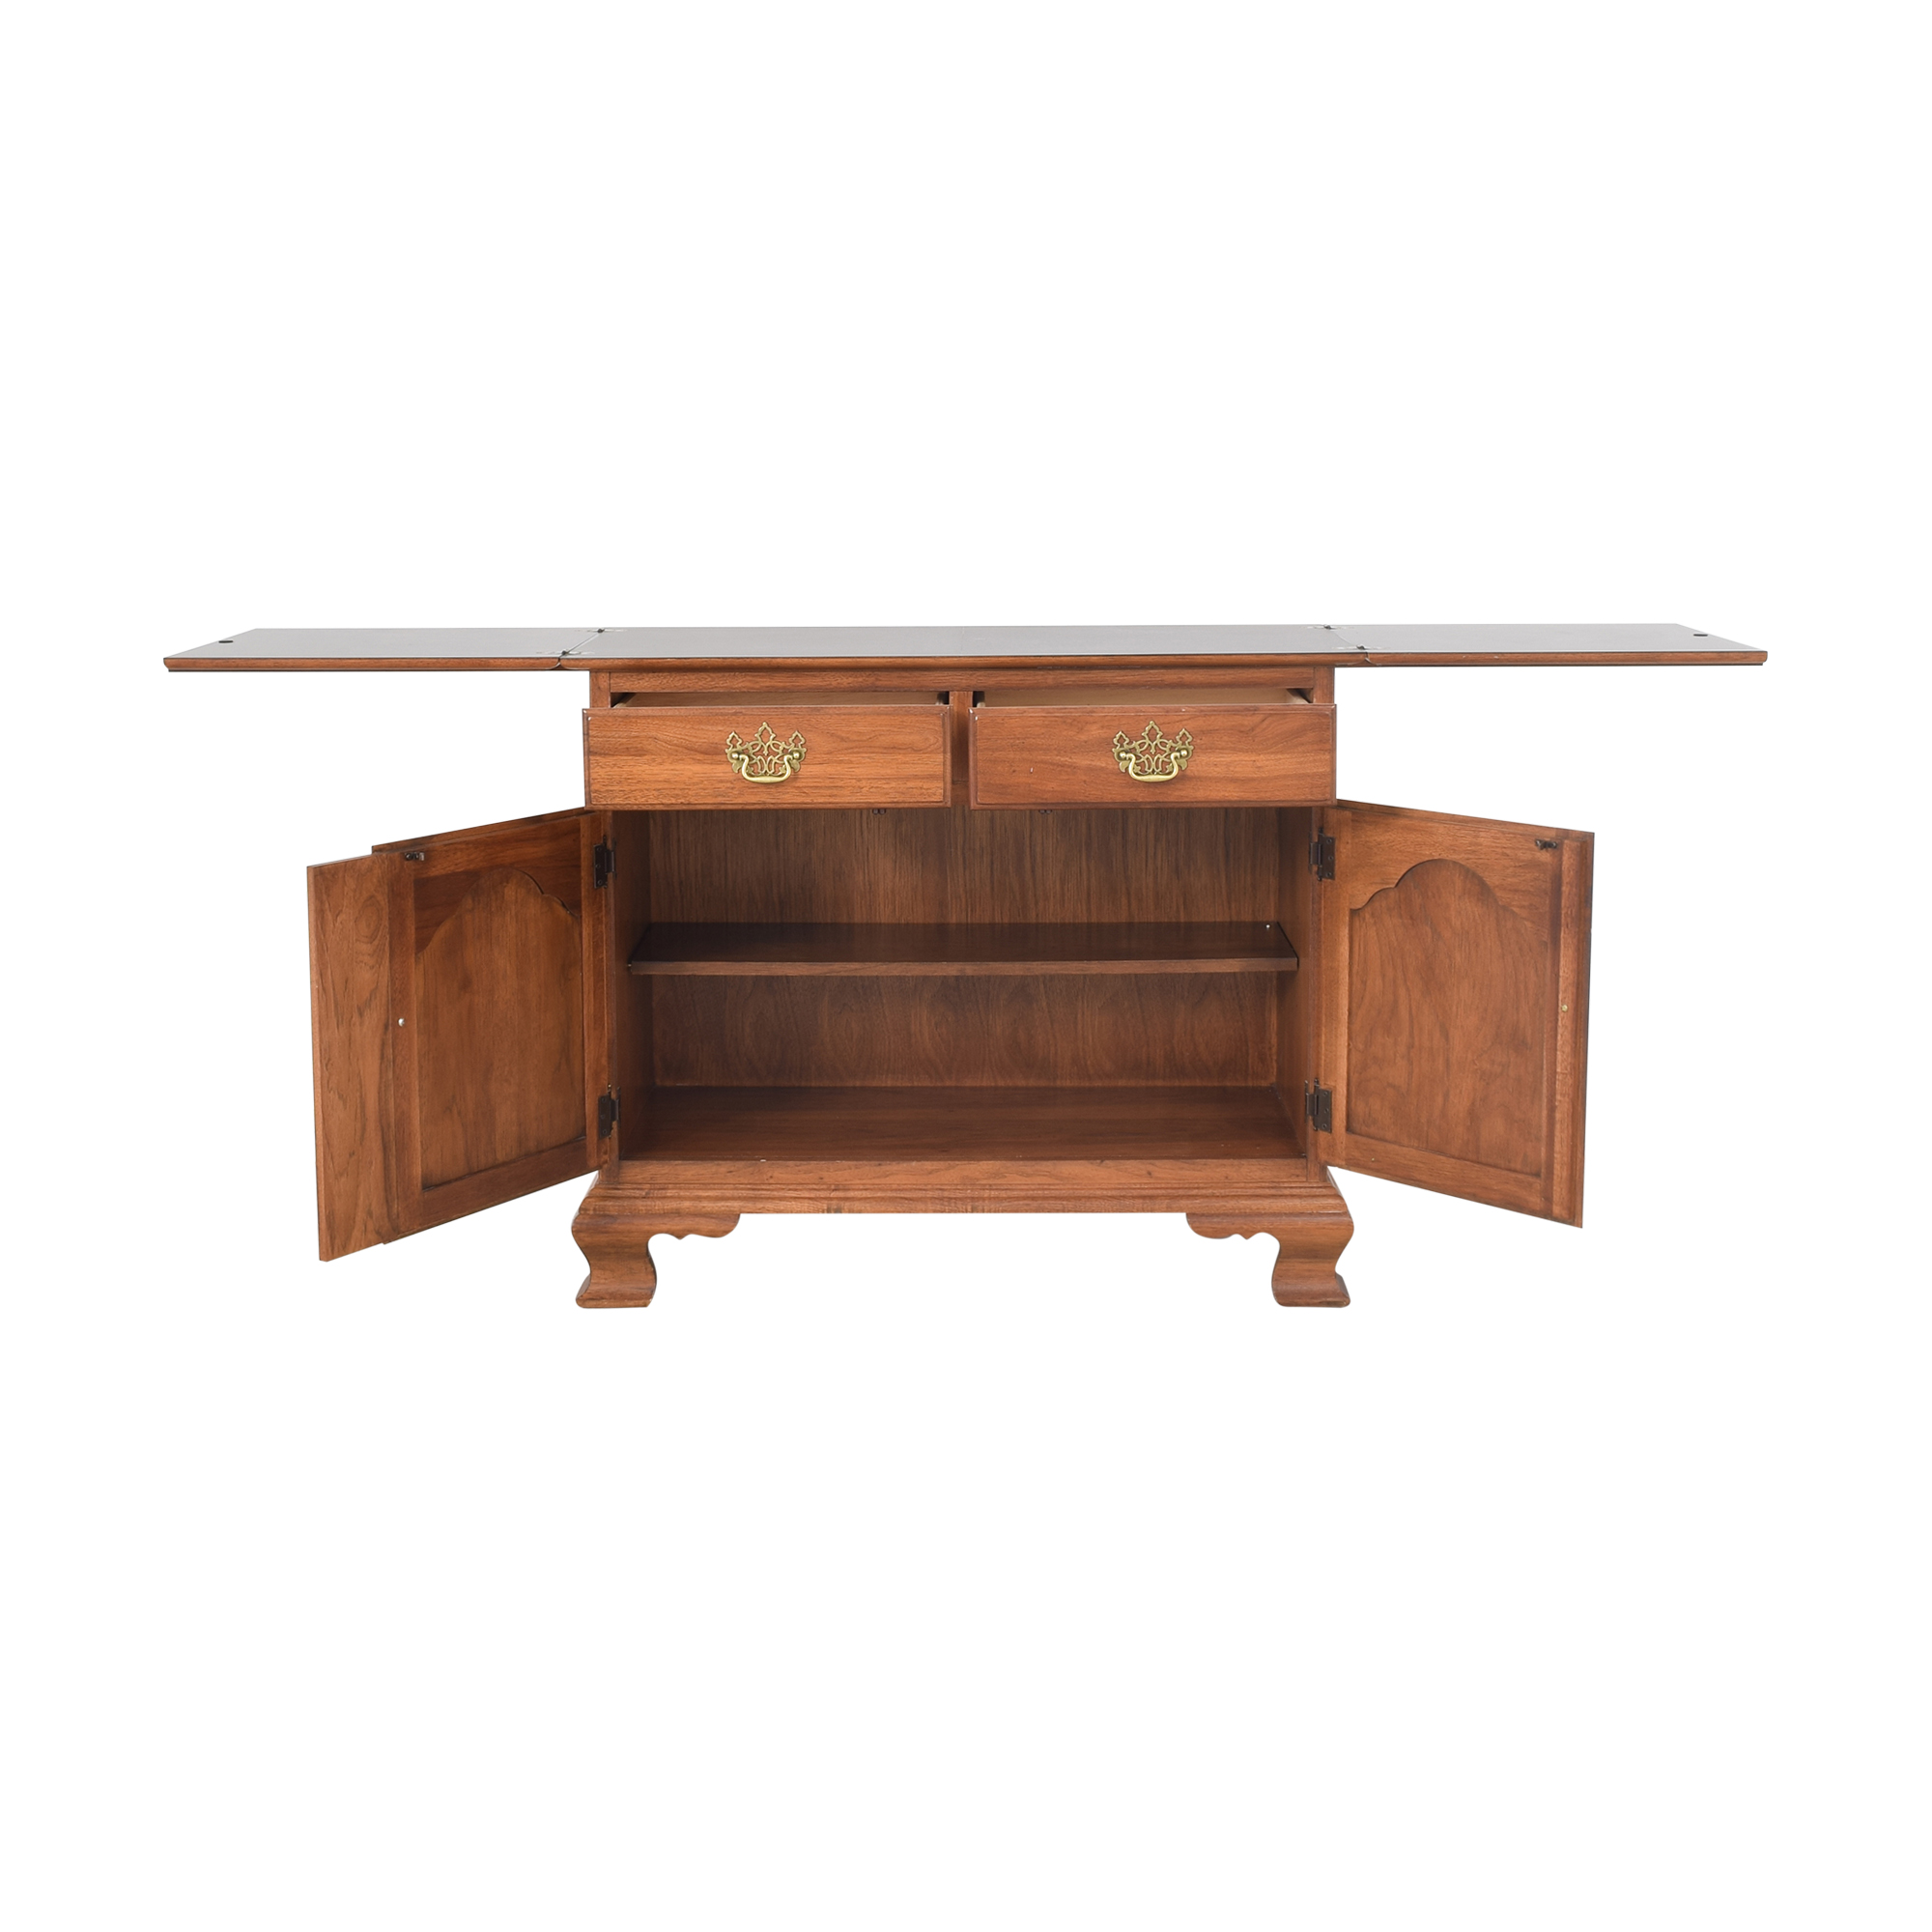 Thomasville Thomasville Fisher Park Fold Out Server Buffet ct